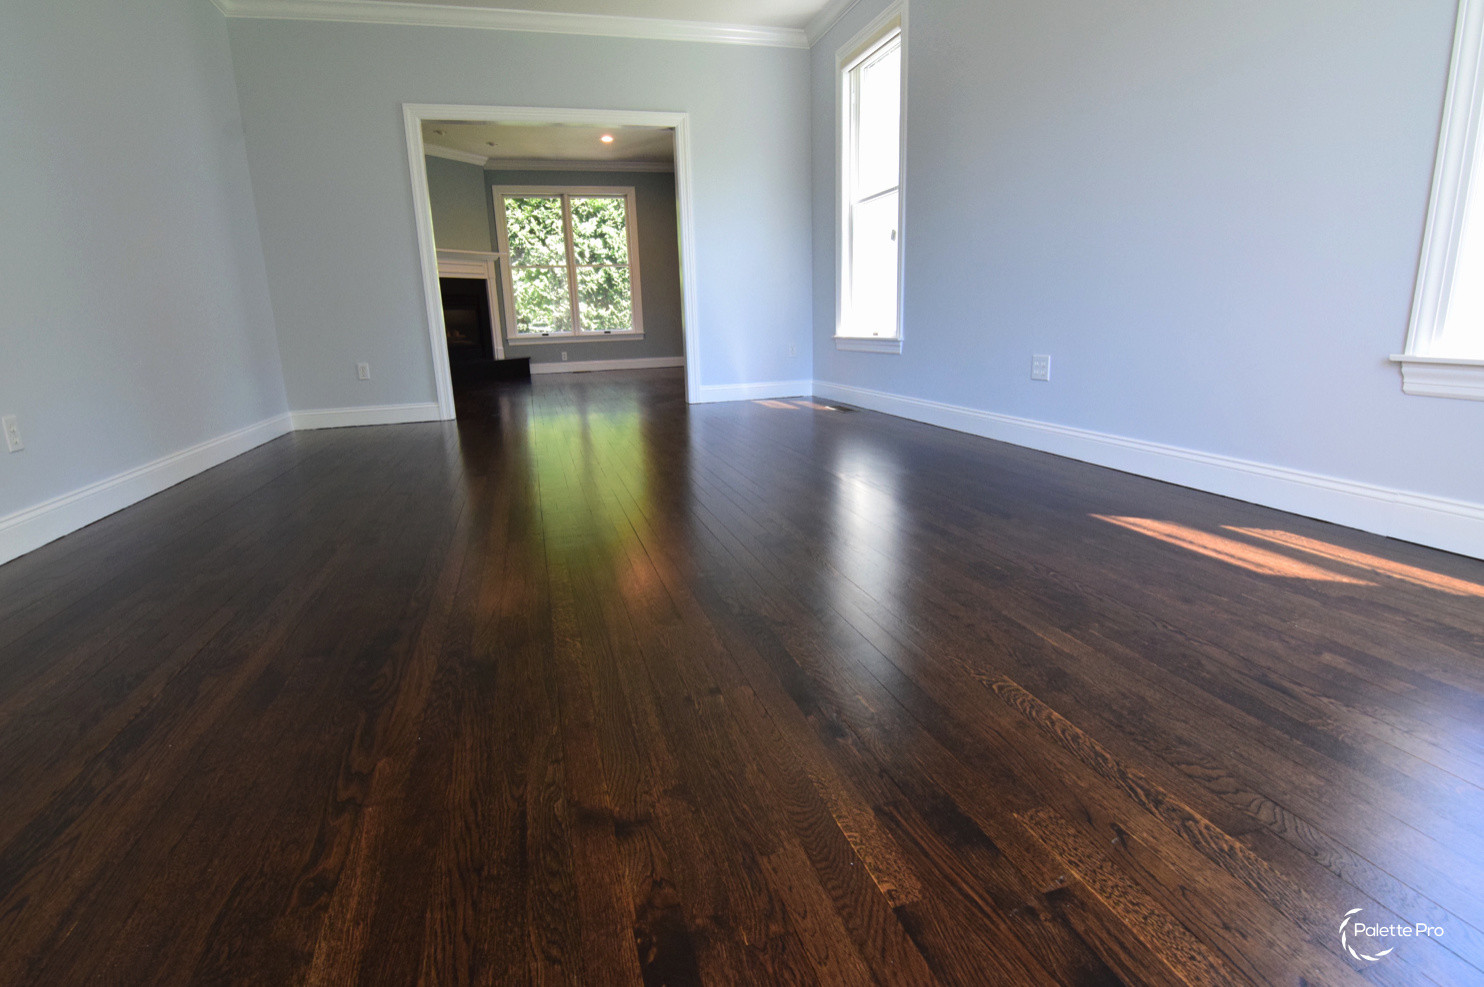 Hardwood Floor Refinishing New orleans Of Hardwood Floor Refinishing Archives Wlcu Regarding Hardwood Floor Repair Near Me Awesome Hardwood Floor Refinishing Hardwood Floor Repair